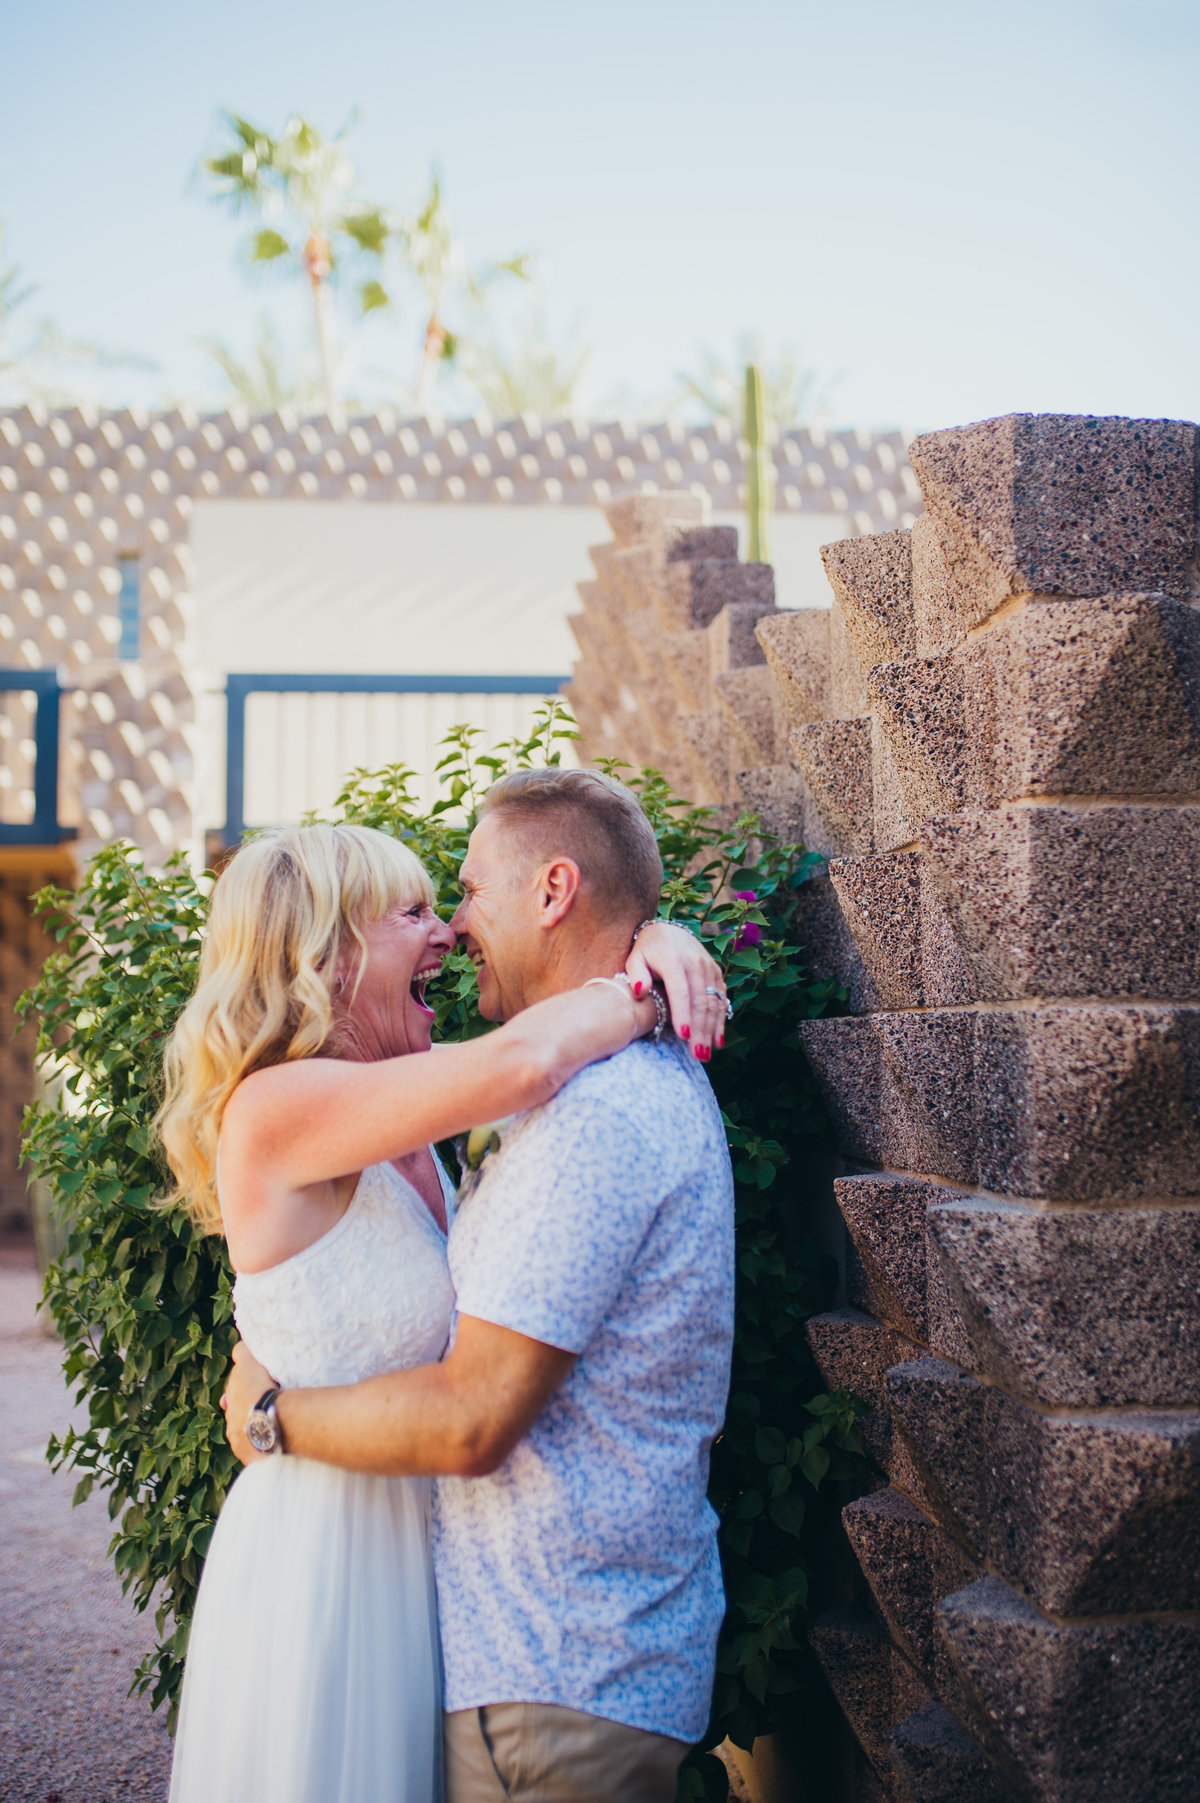 A couple that flew all the way from London to Scottsdale, Arizona to have an amazing Arizona Elopement